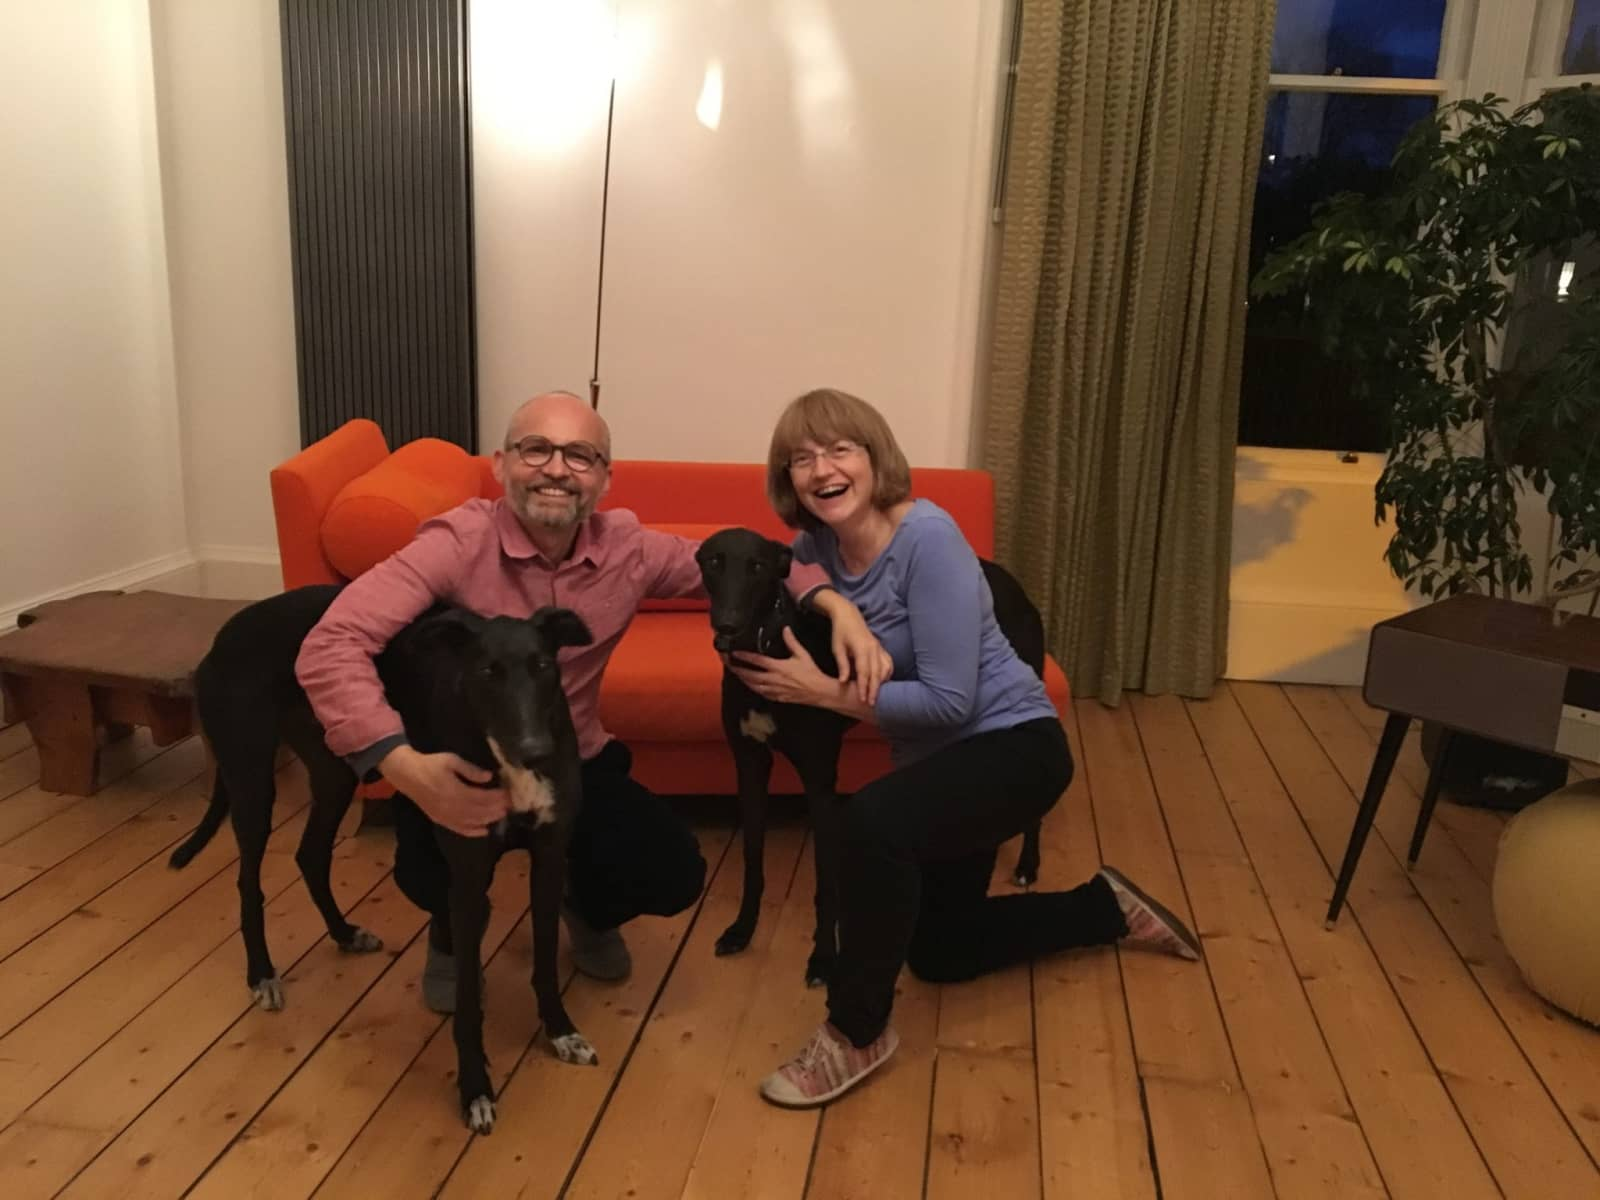 Clive & Simone from Glasgow, United Kingdom